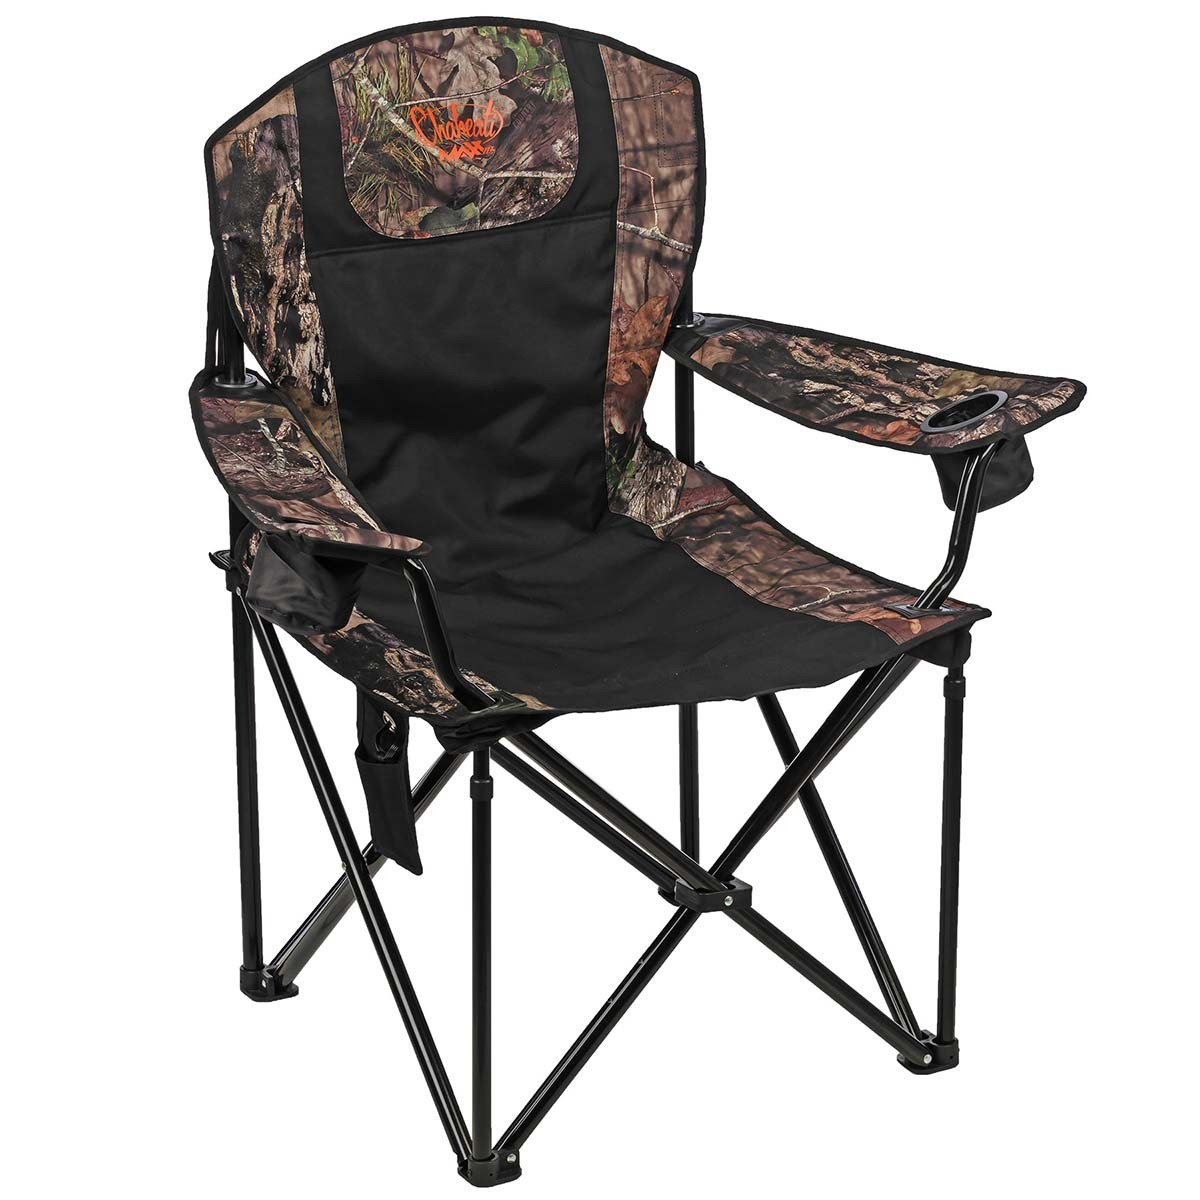 camping chairs at walmart office chair mat for hardwood floors chaheati mossy oak maxx heated folding